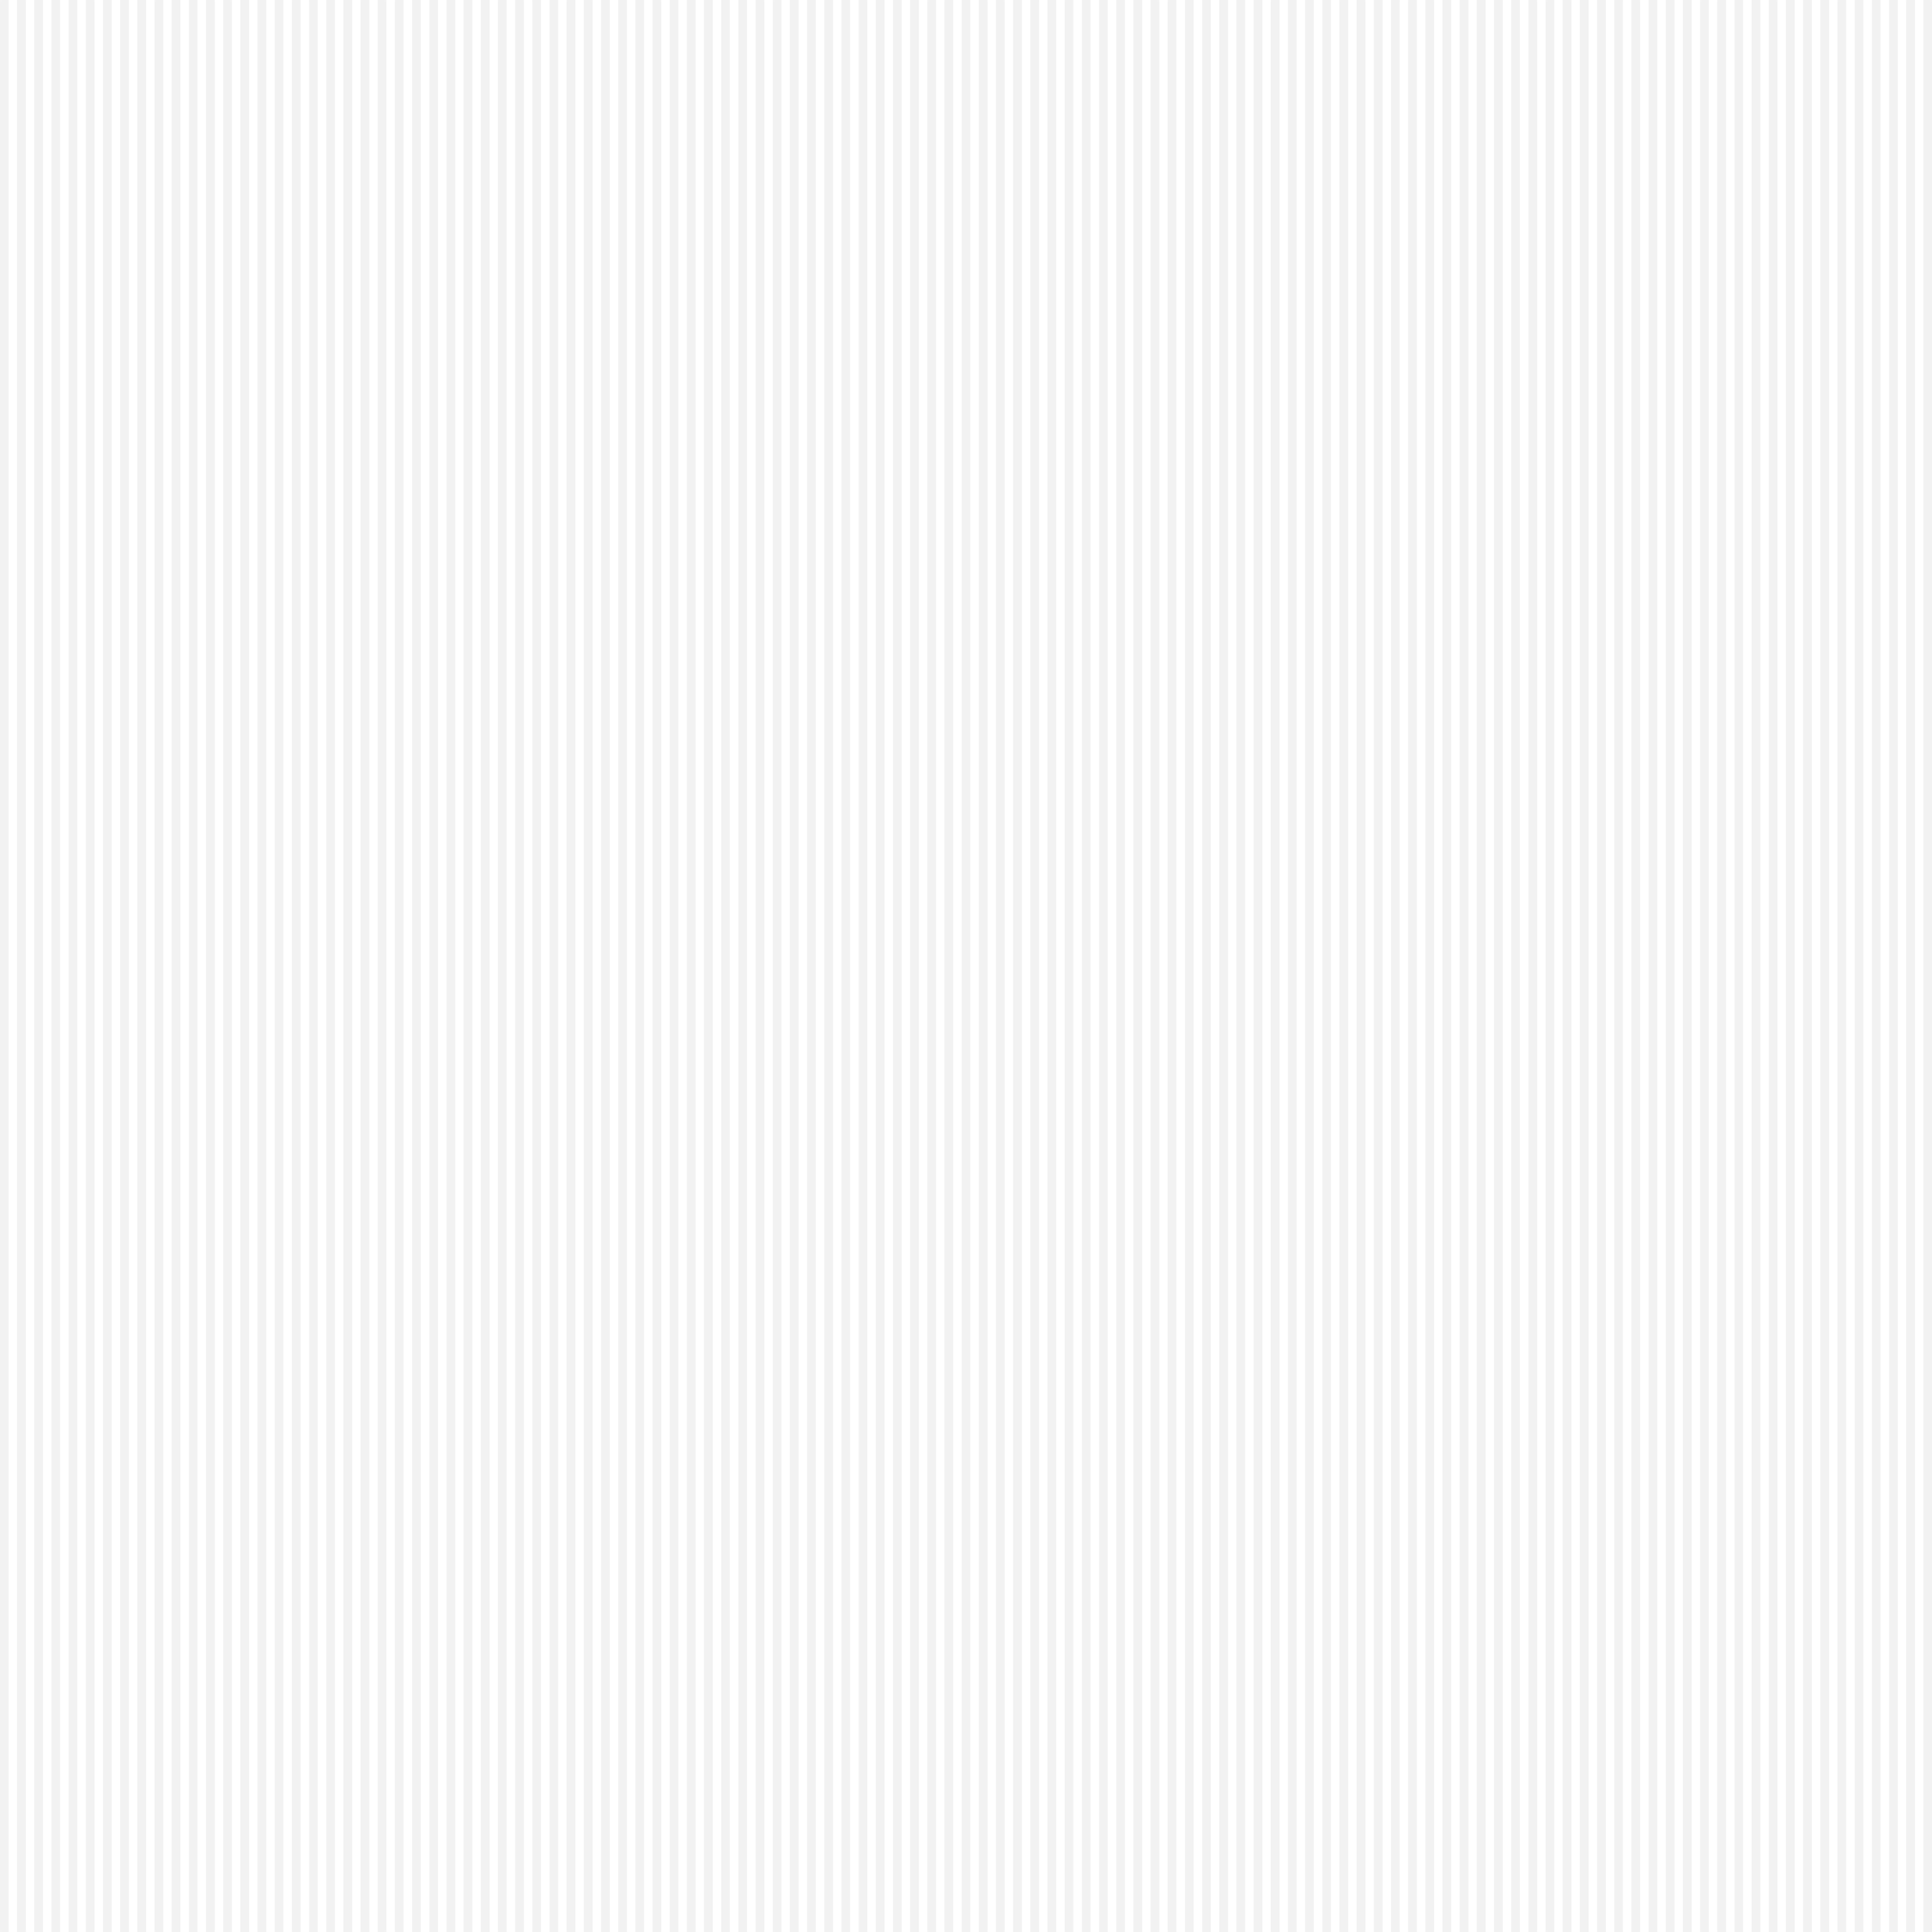 White lines png. Vertical background effect clip